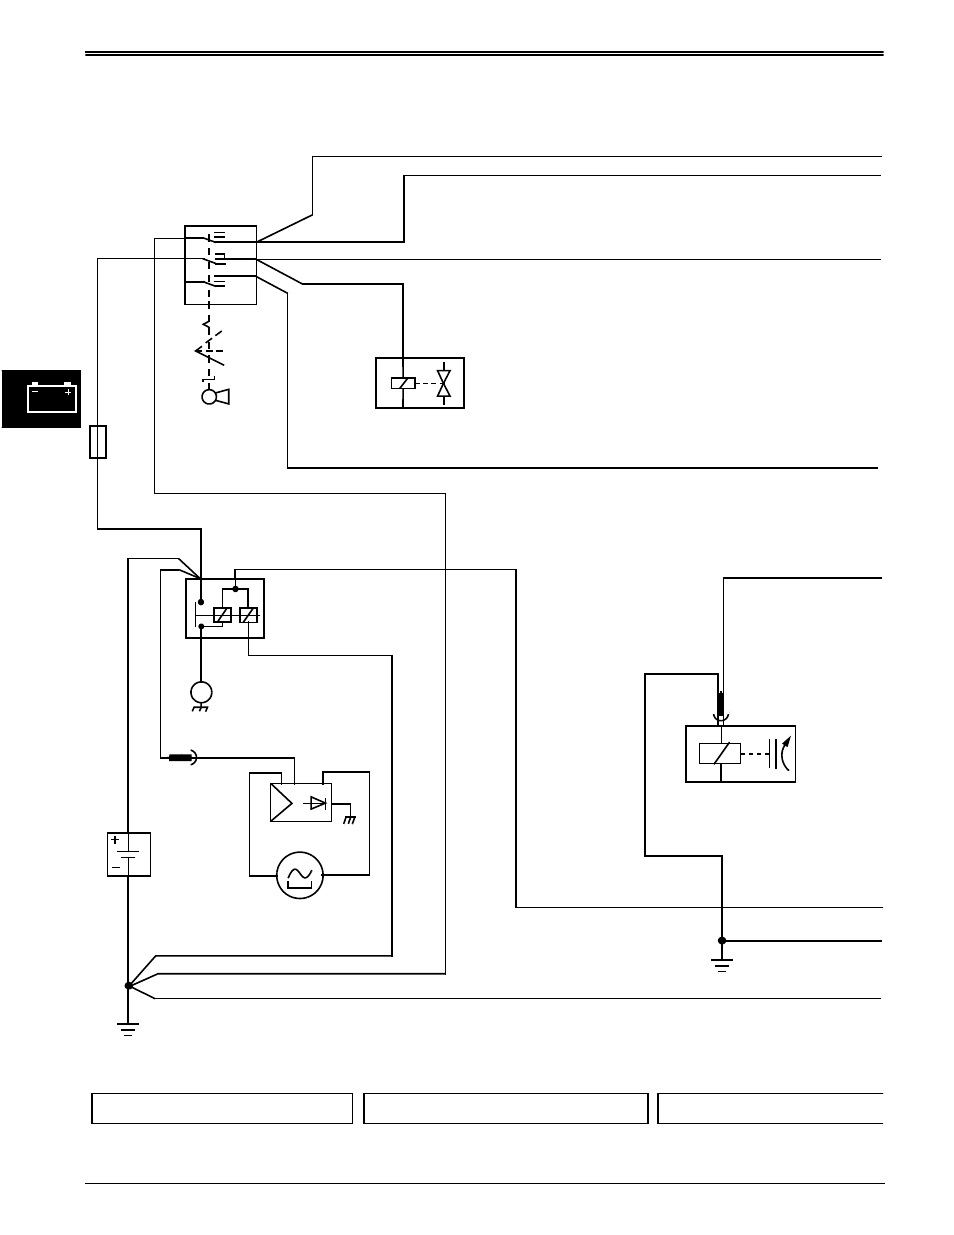 Wiring    schematics      John       Deere    stx38 User Manual   Page